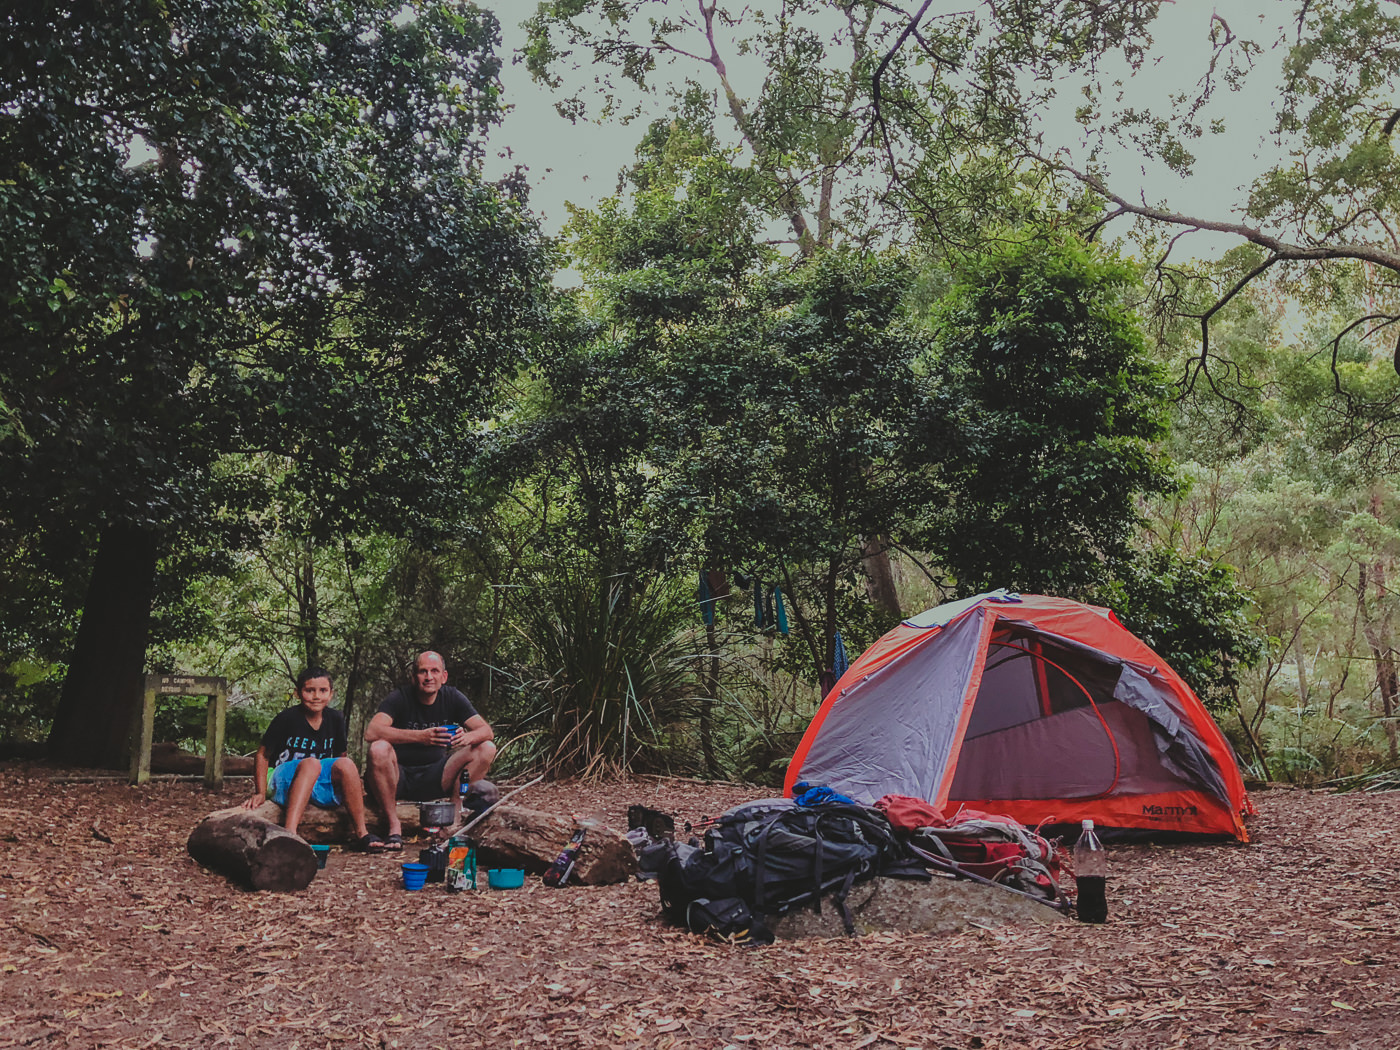 not glamping but camping with kids